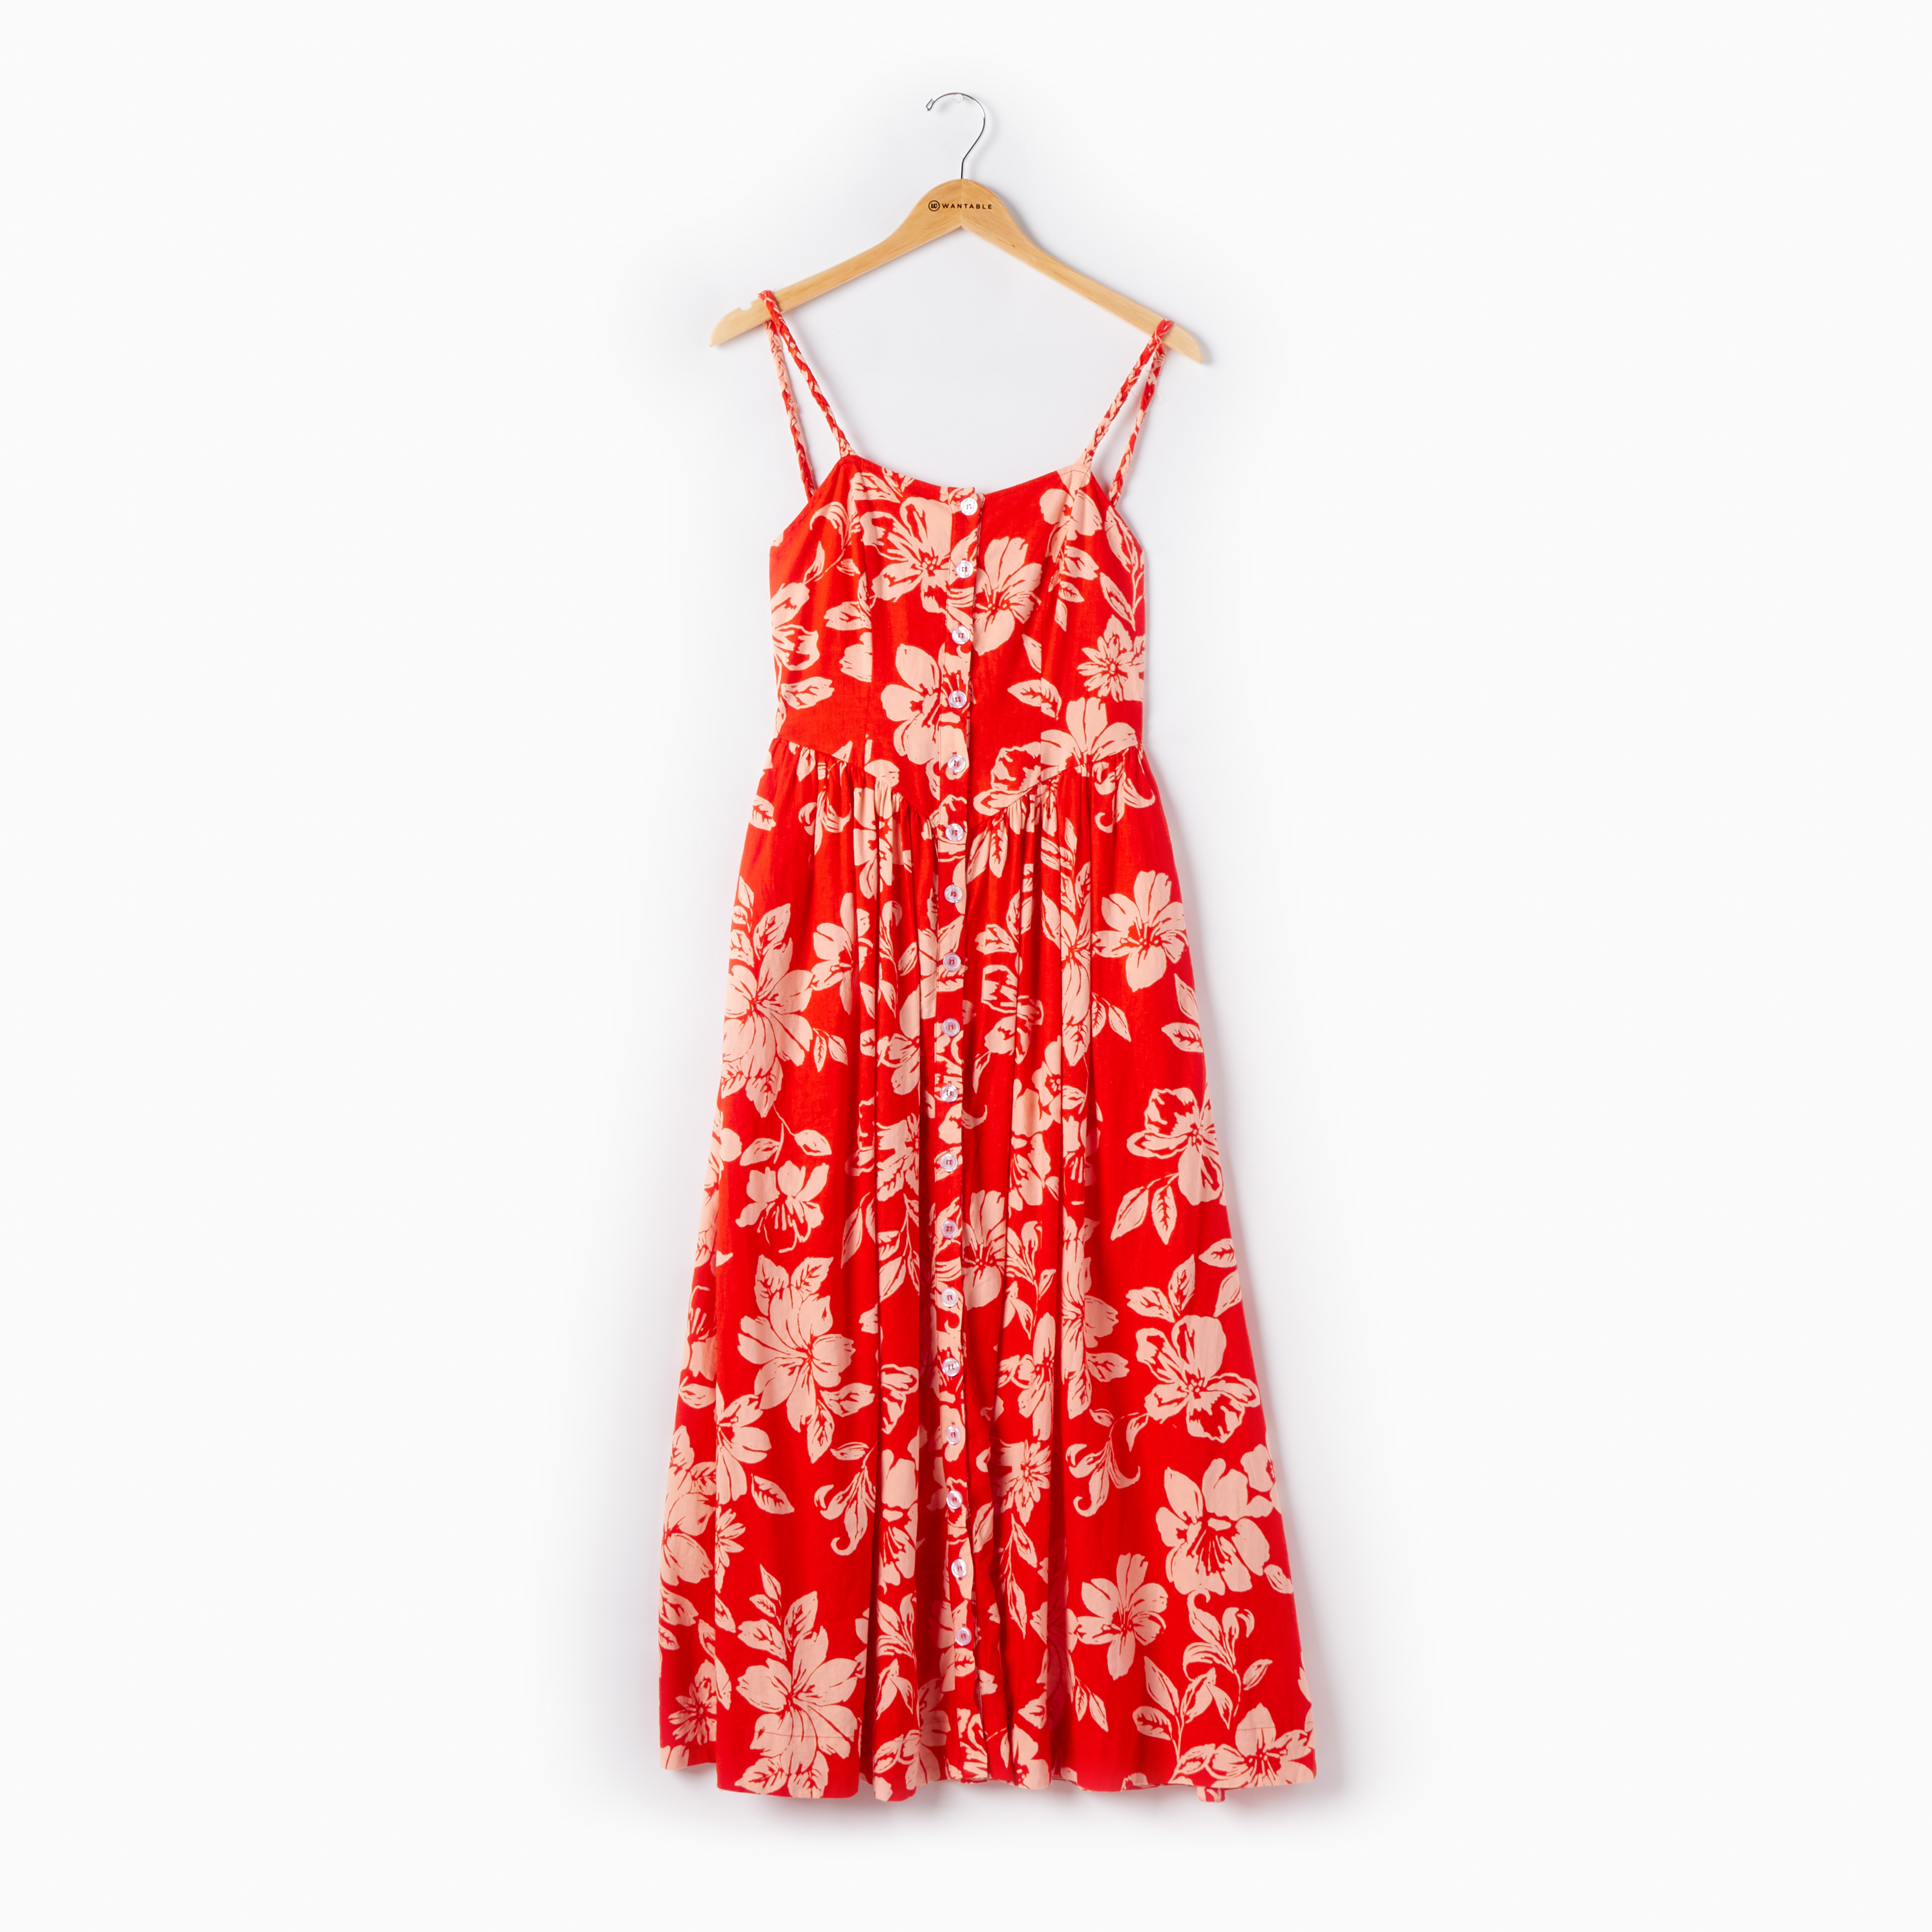 Red floral Free People sundress on a hanger - causal summer dress